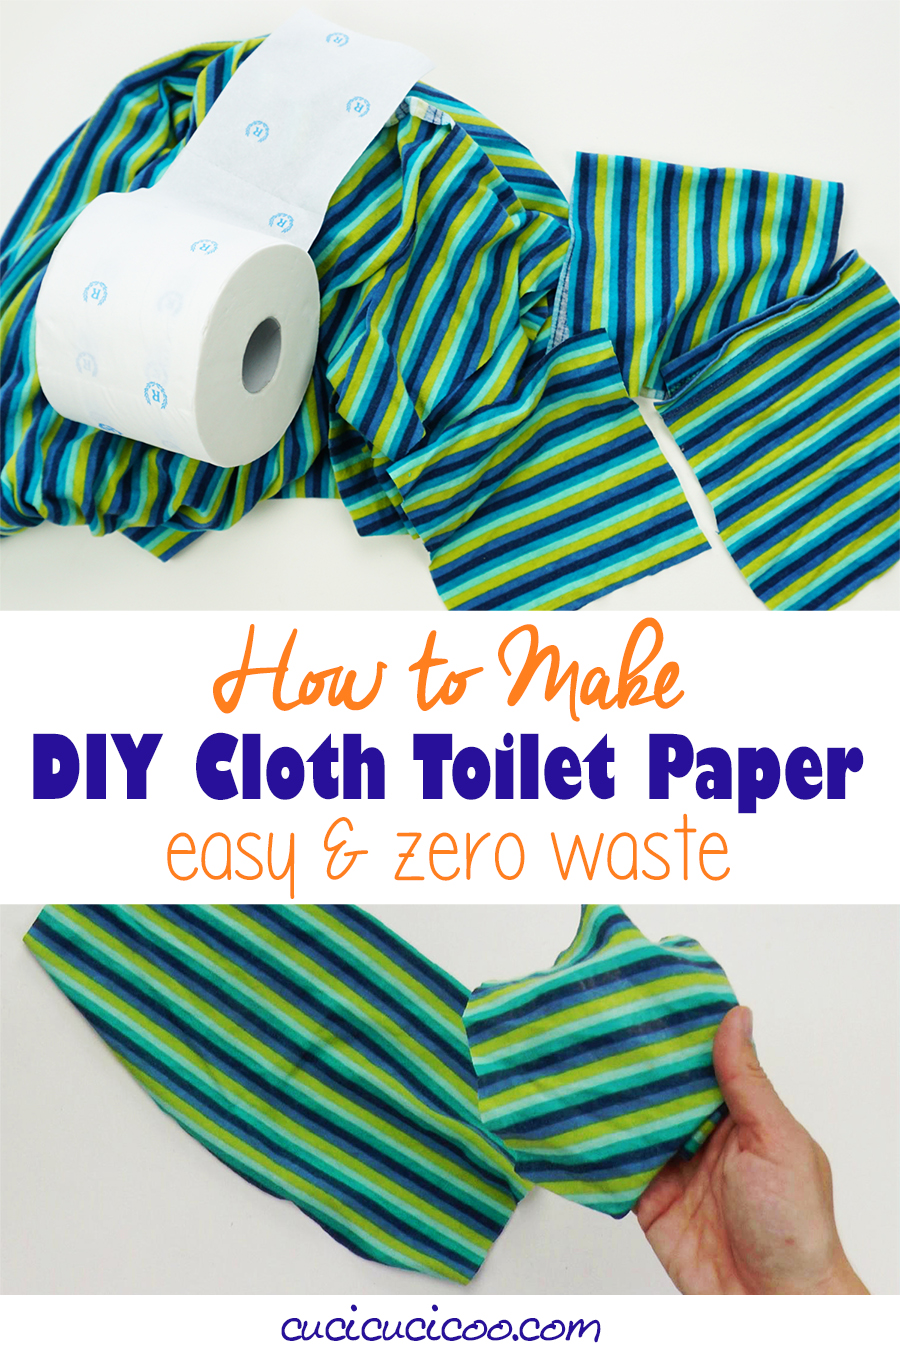 No more toilet rolls left? Don't panic because it's super easy and FREE to make your own DIY cloth toilet paper! Recycle your old sheets and Tshirts without sewing and treat your body and the environment right. Reusable toilet tissue is actually easy to take care of and will never run out! #reusabletoiletpaper #nowaste